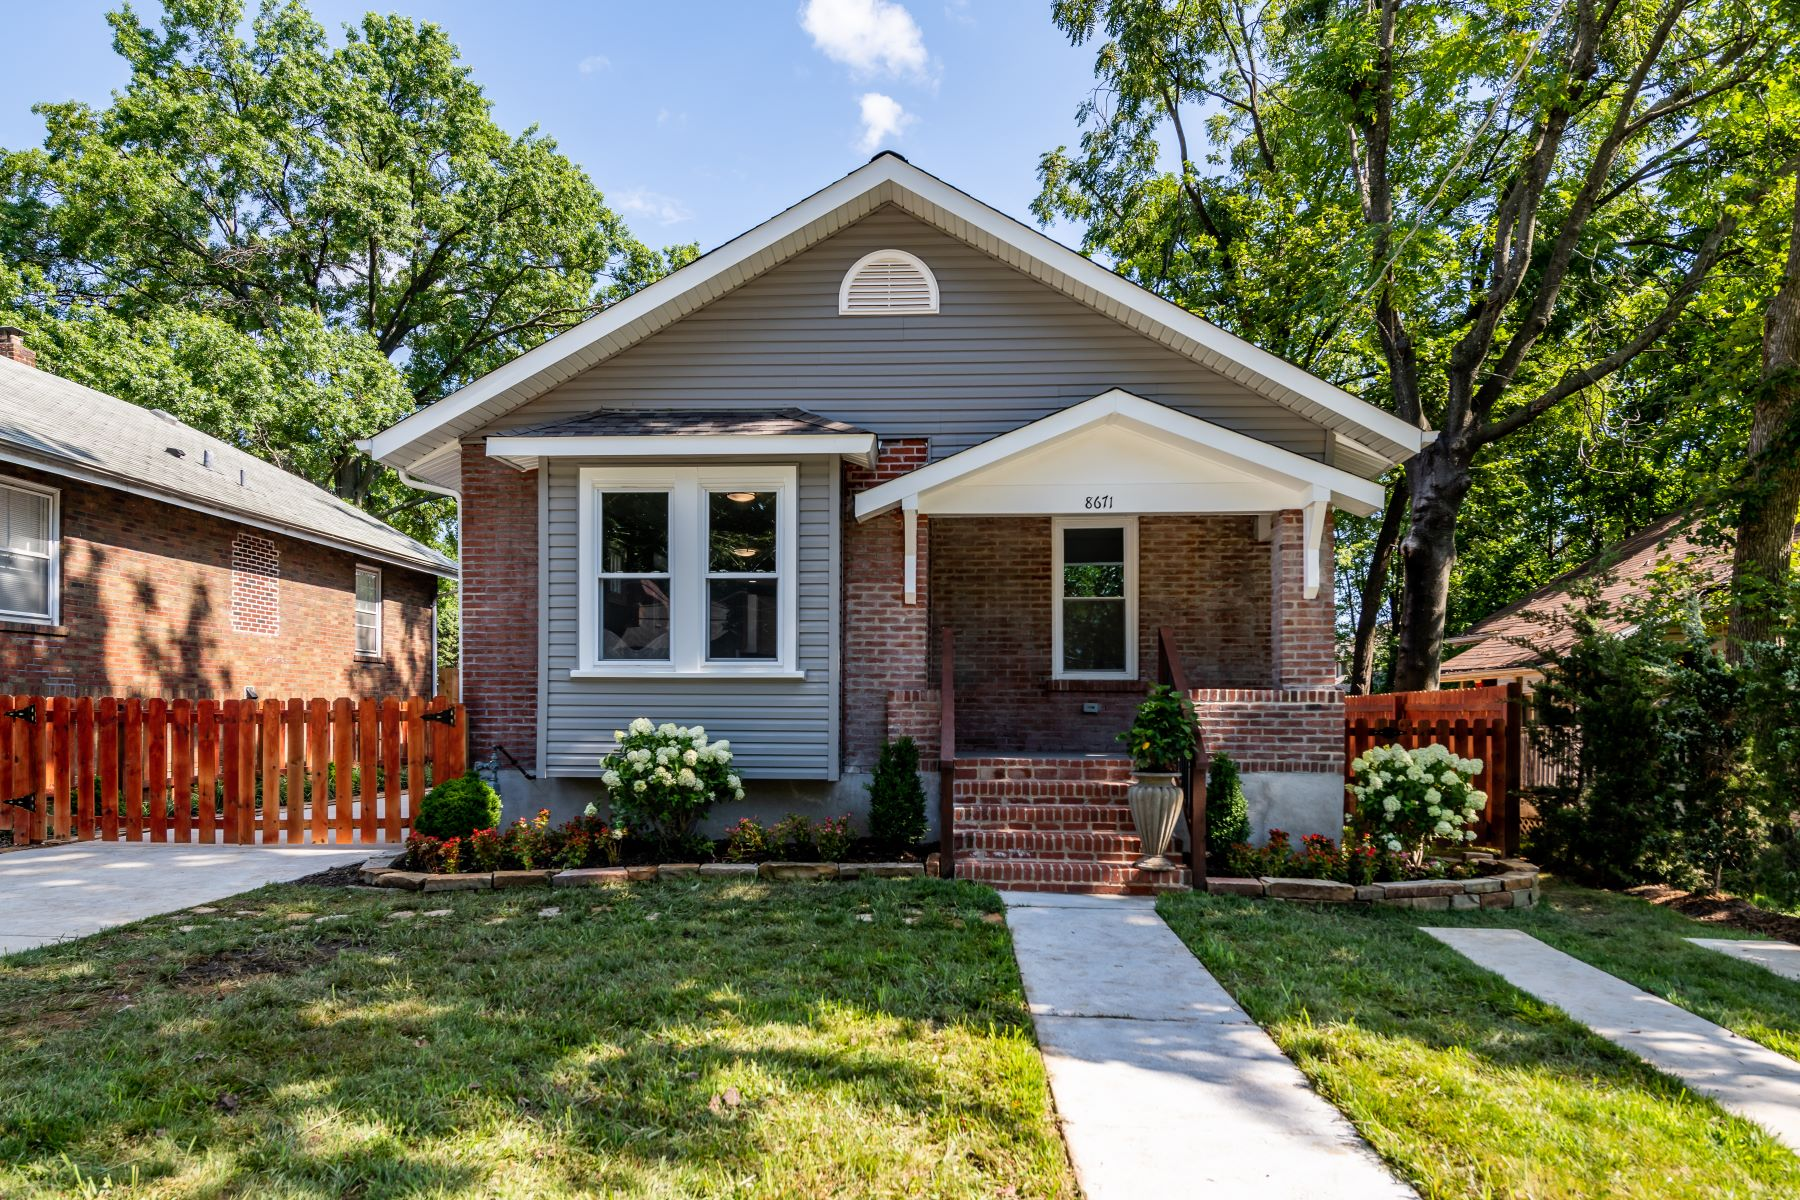 Property for Sale at Renovated Bungalow on Olden Avenue 8671 Olden Avenue St. Louis, Missouri 63114 United States